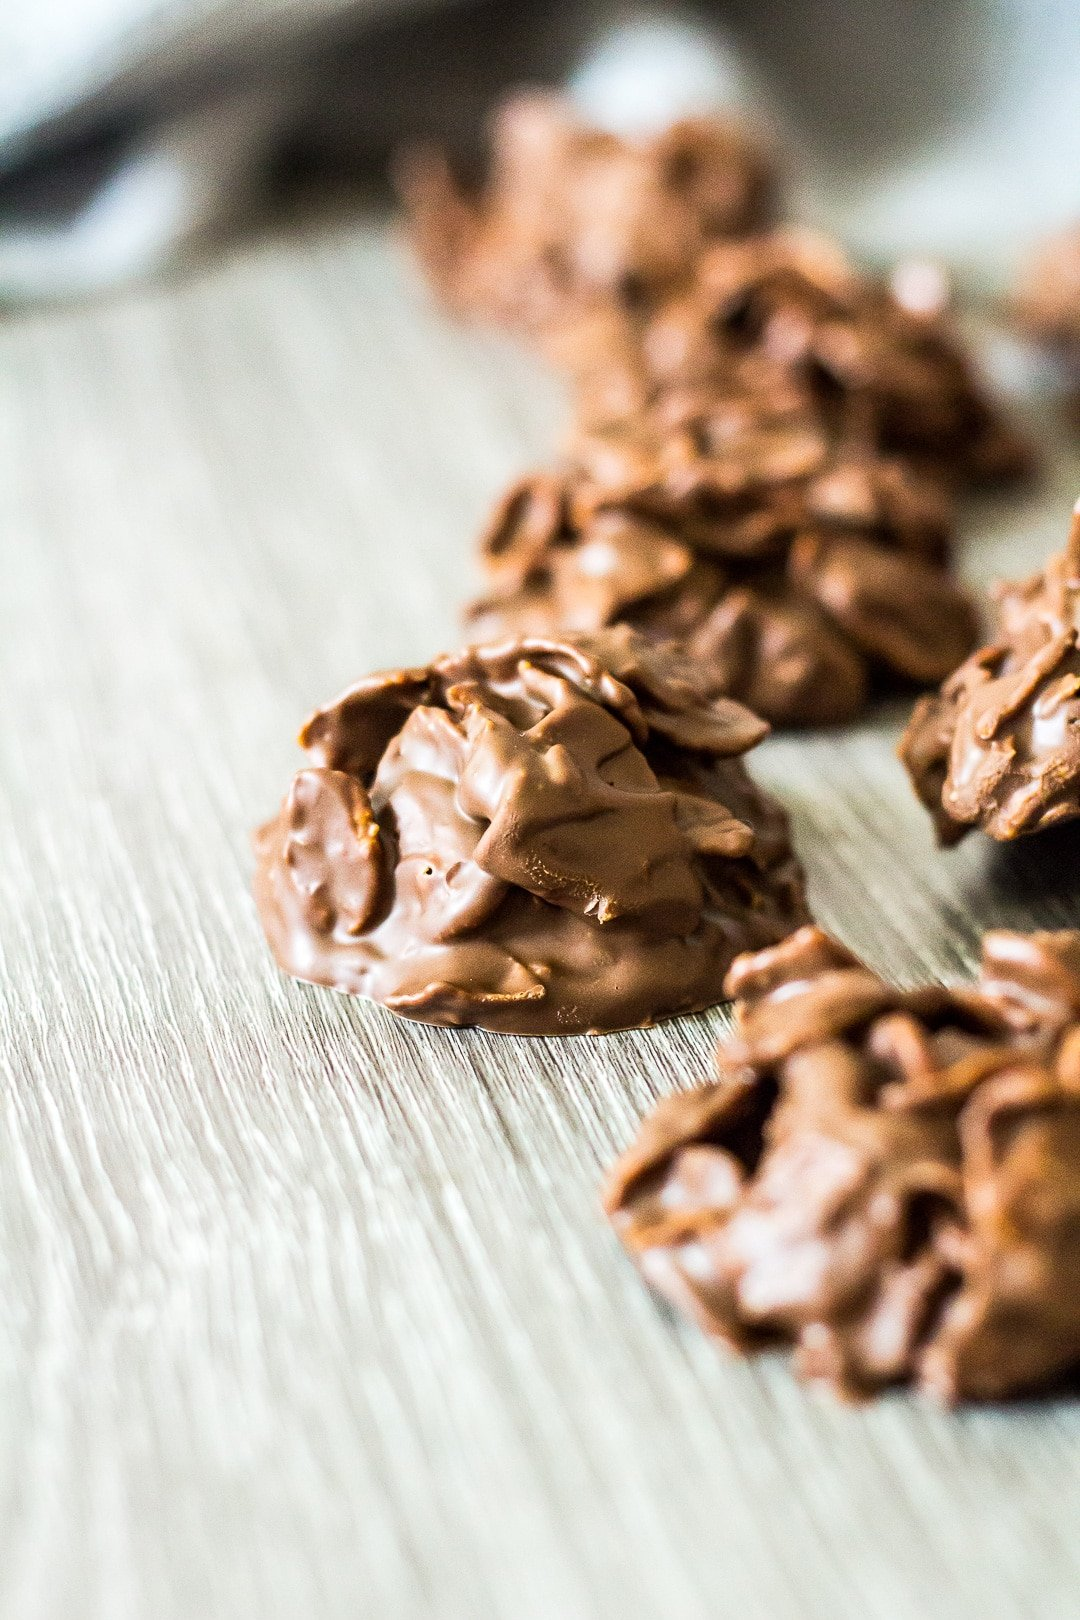 Chocolate Peanut Butter Cornflake Cookies.